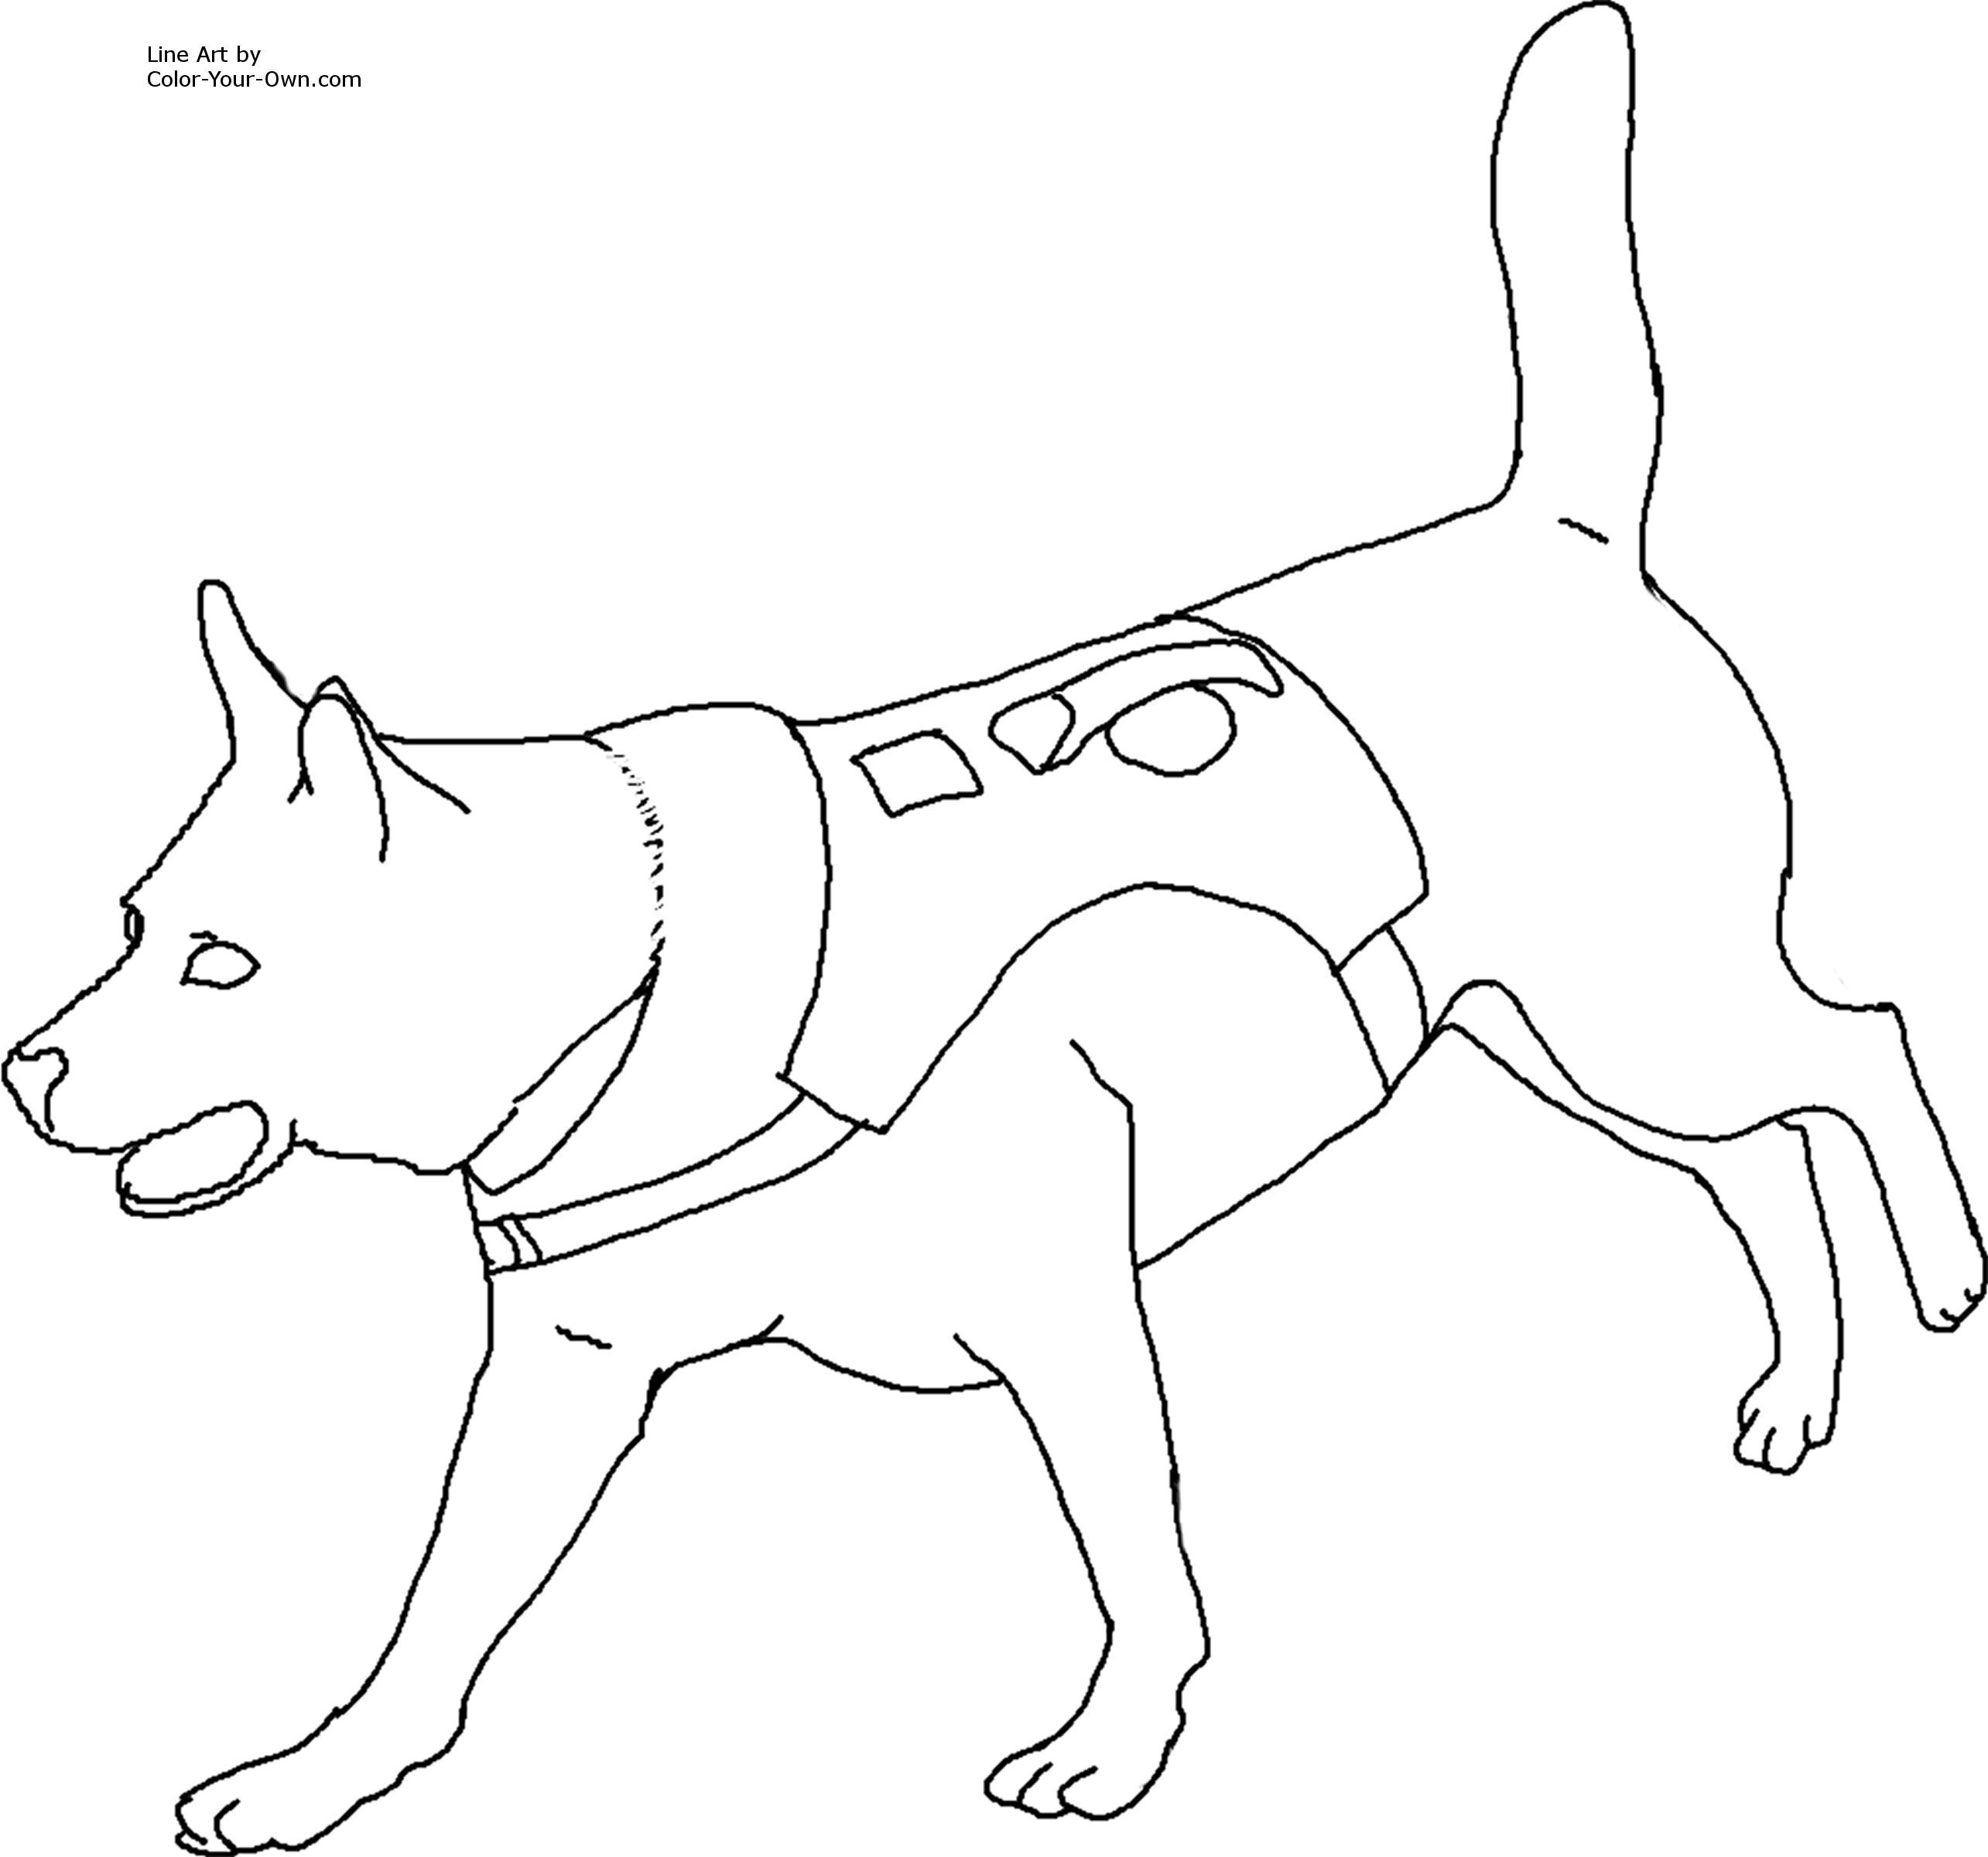 Free dog coloring pages images jpg 2569x2400 pixels dog